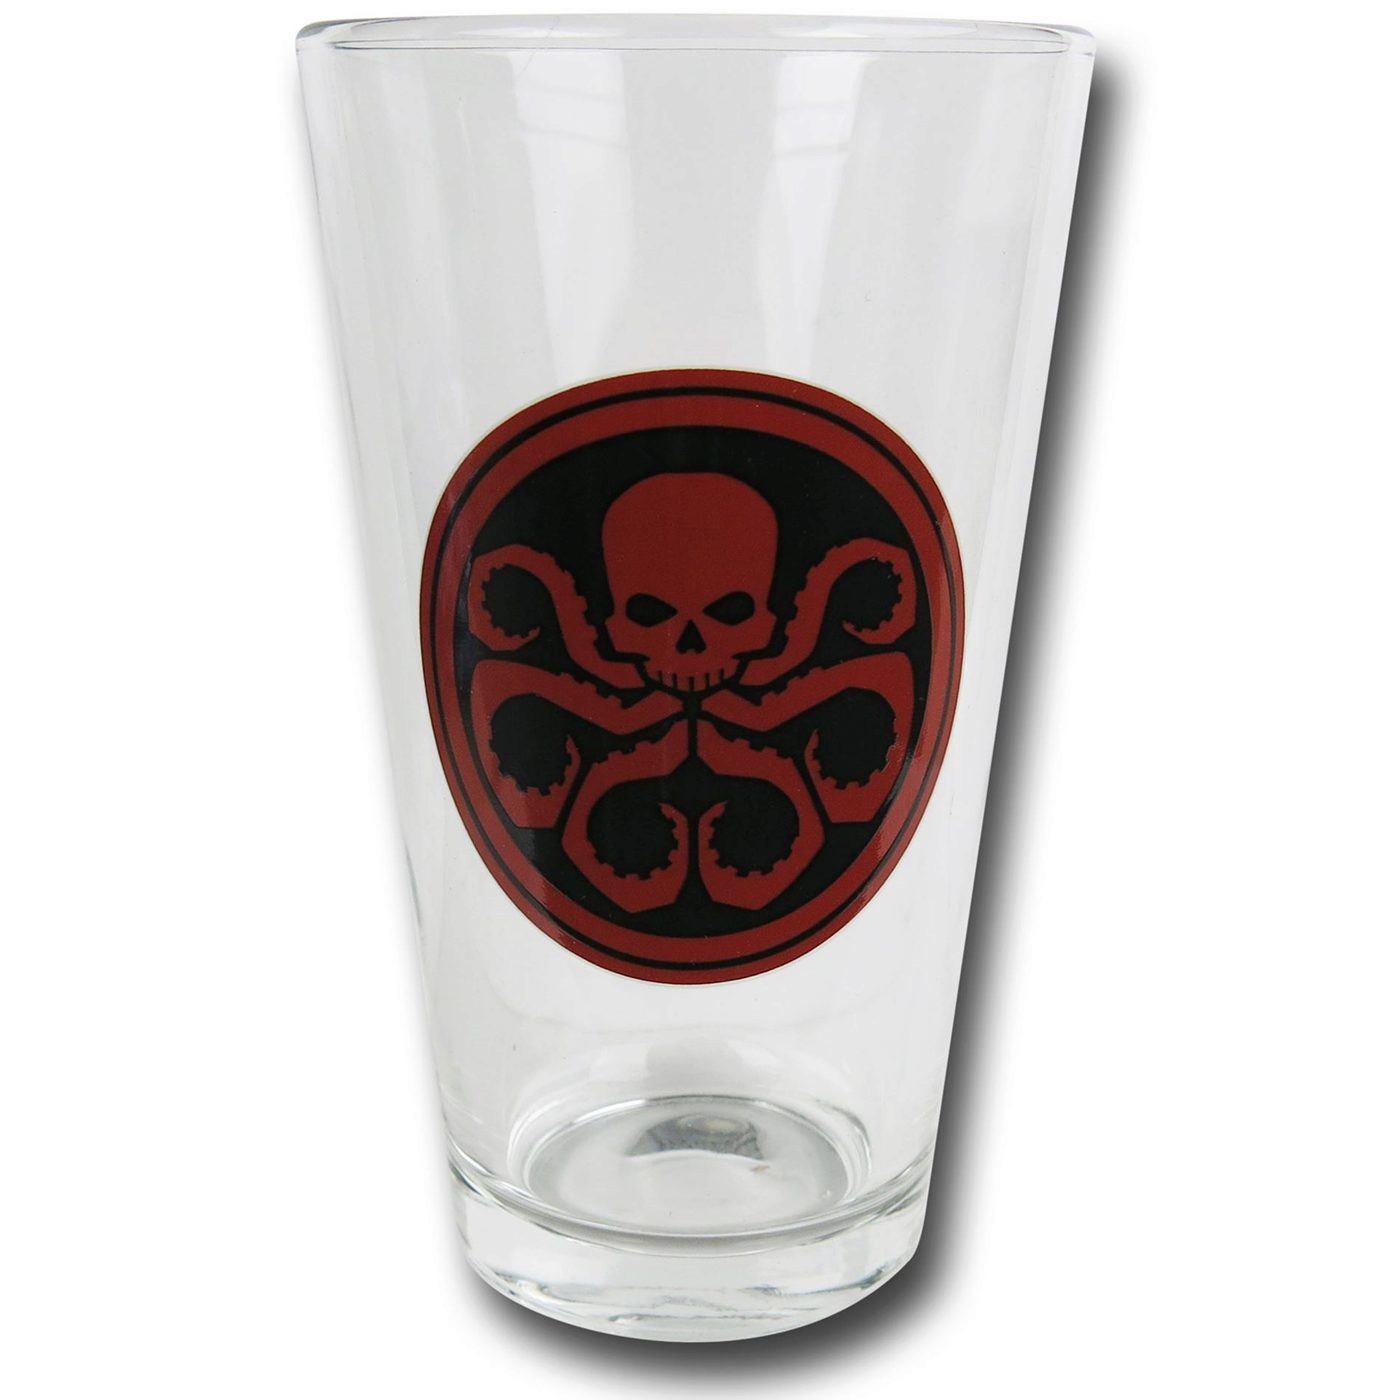 SHIELD and Hydra Pint Glass 2-Pack